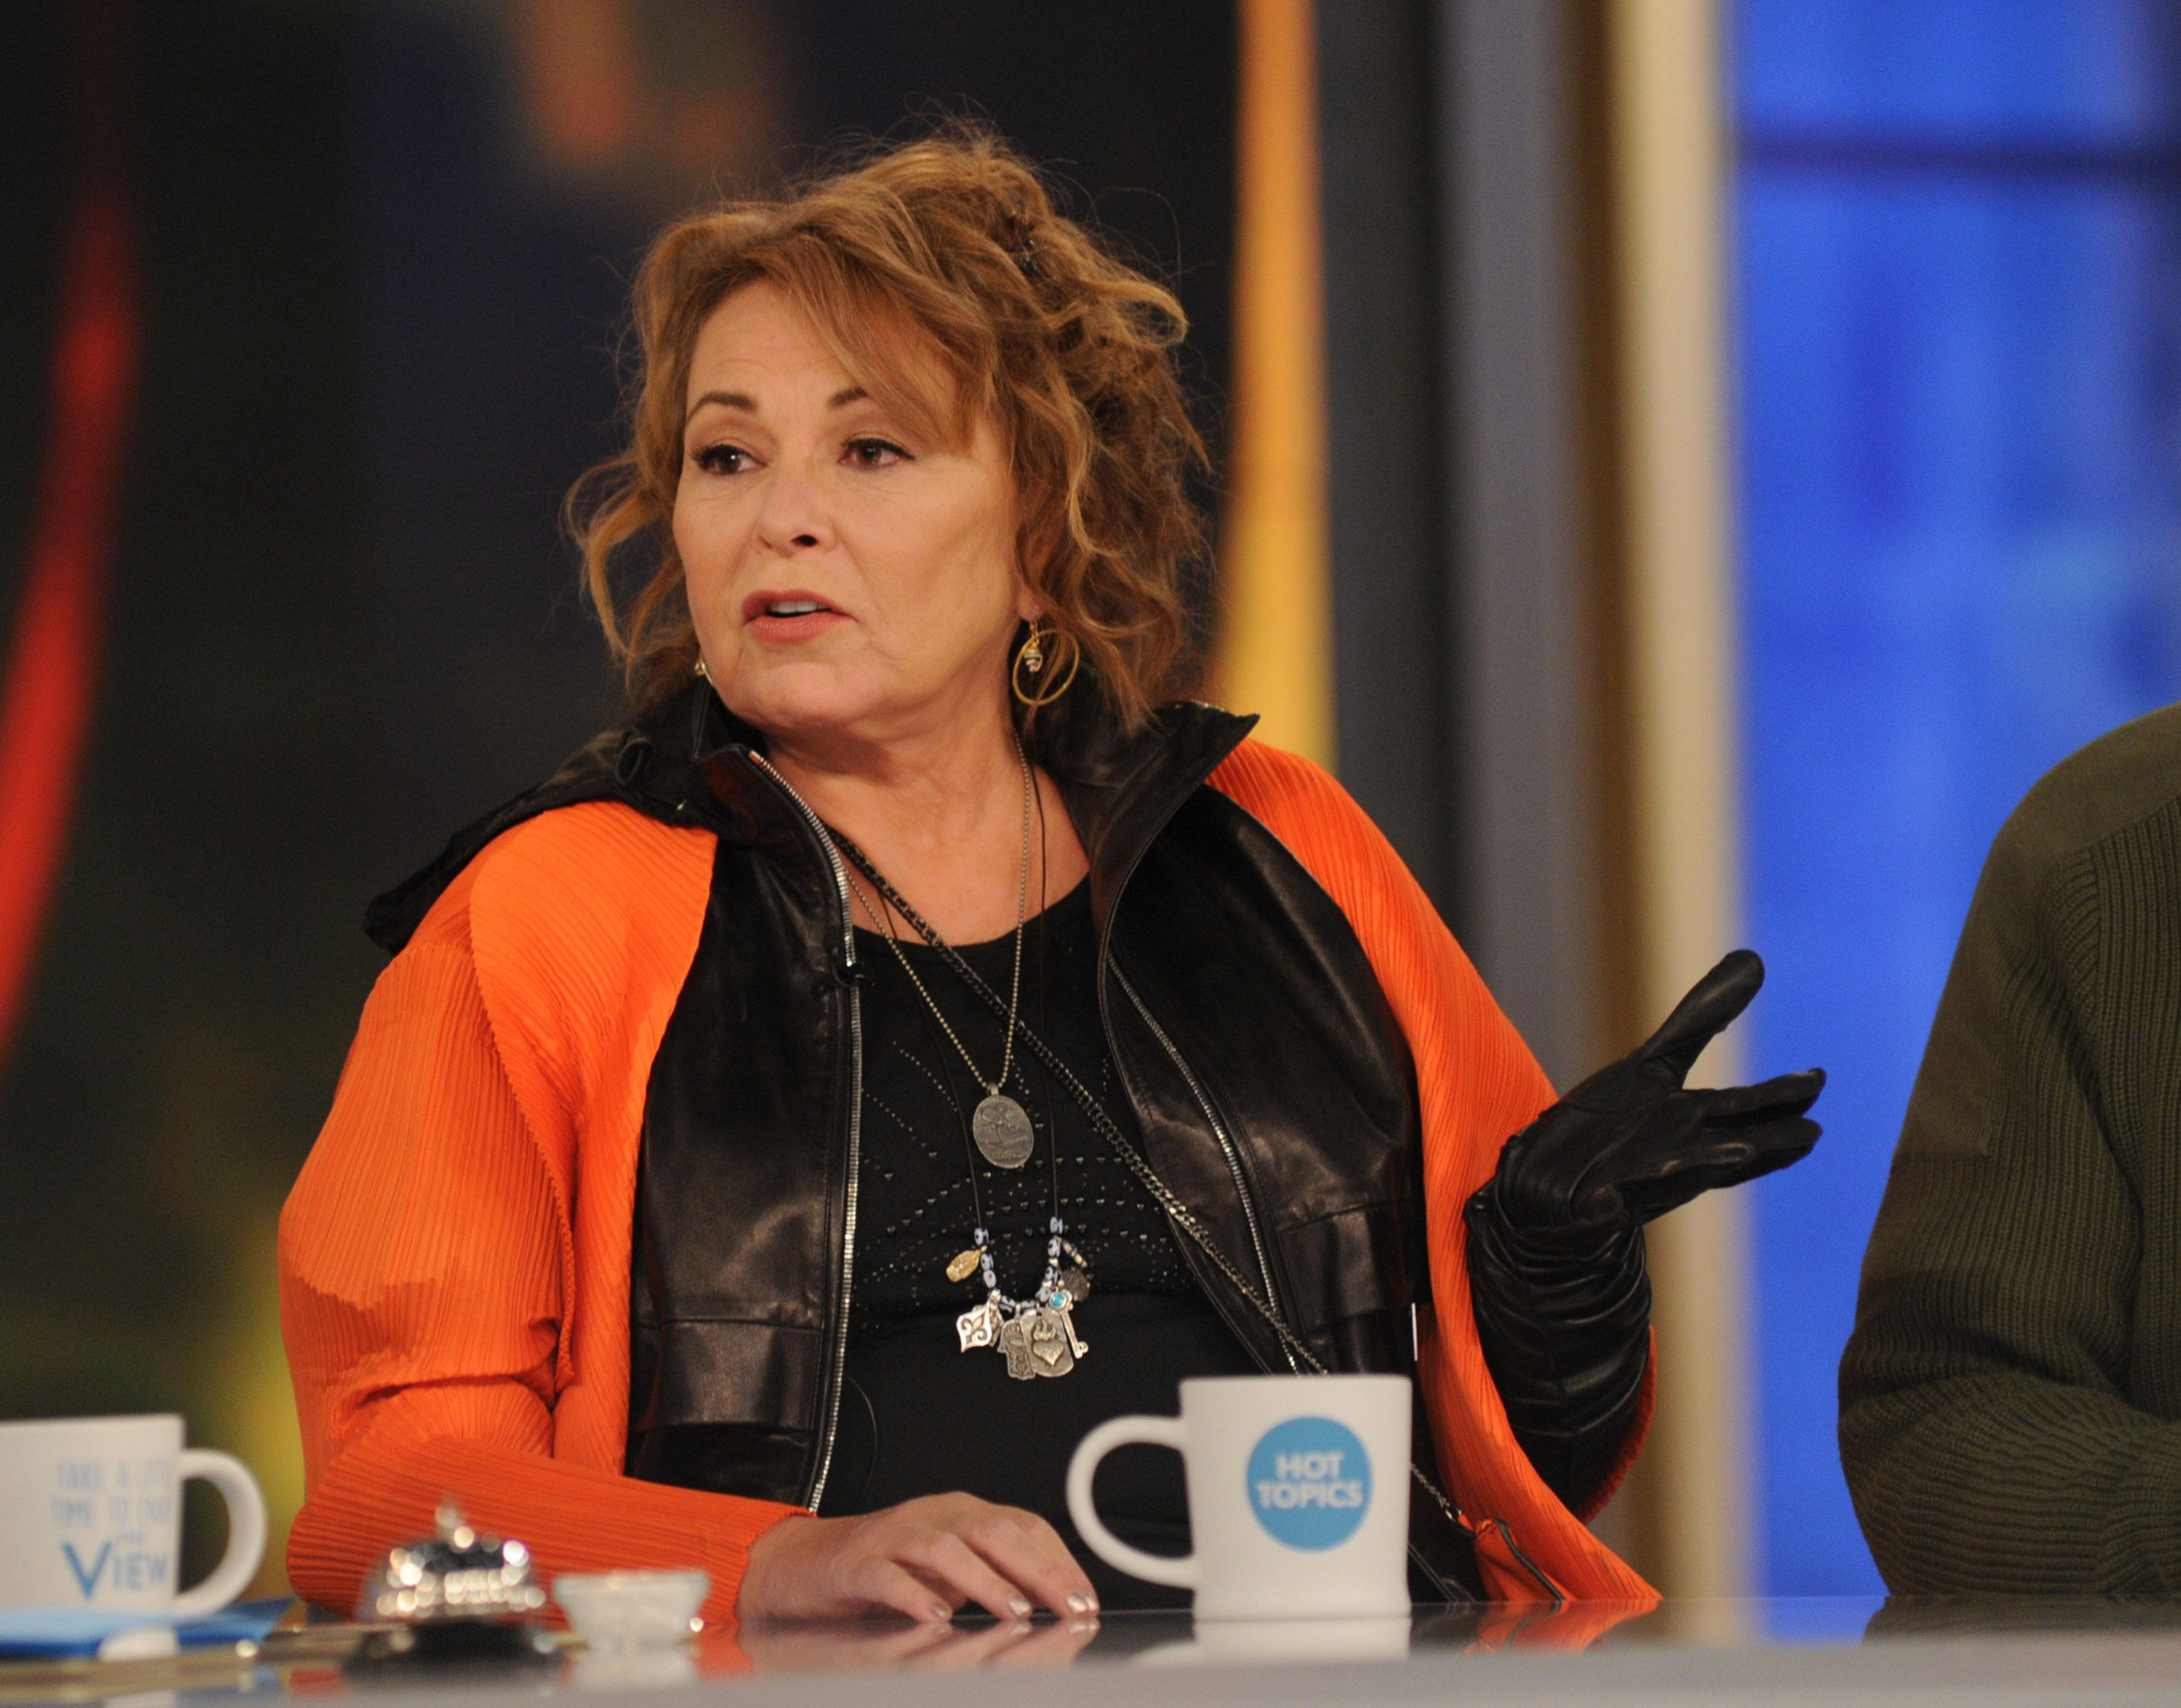 Roseanne Barr sparked widespread outrage after she sent out racist tweets about former Obama aide Valerie Jarrett.